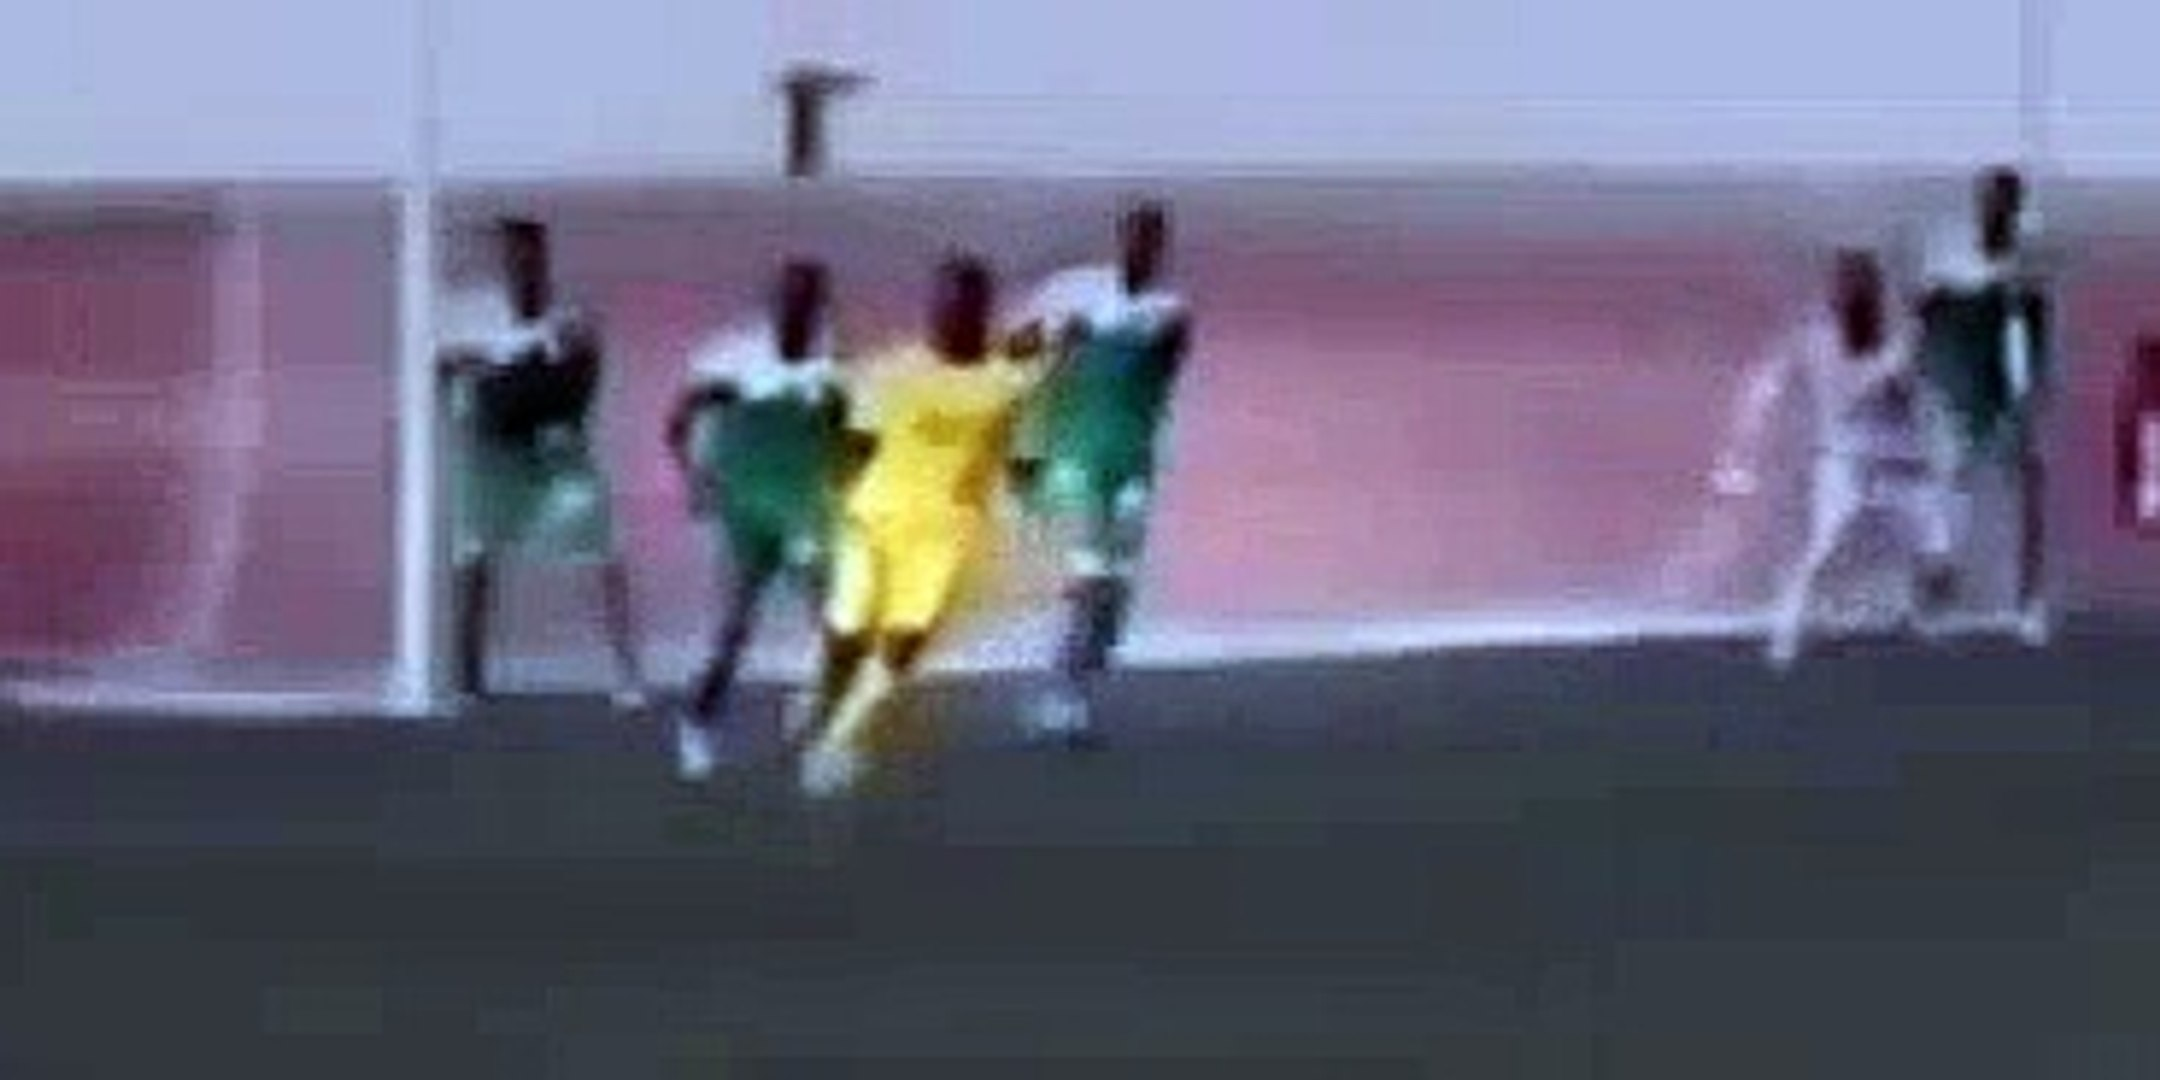 Highlights Goals - Djibouti vs Togo 0-2 highlight and all goals 04.09.2015 African Cup of Nations &a